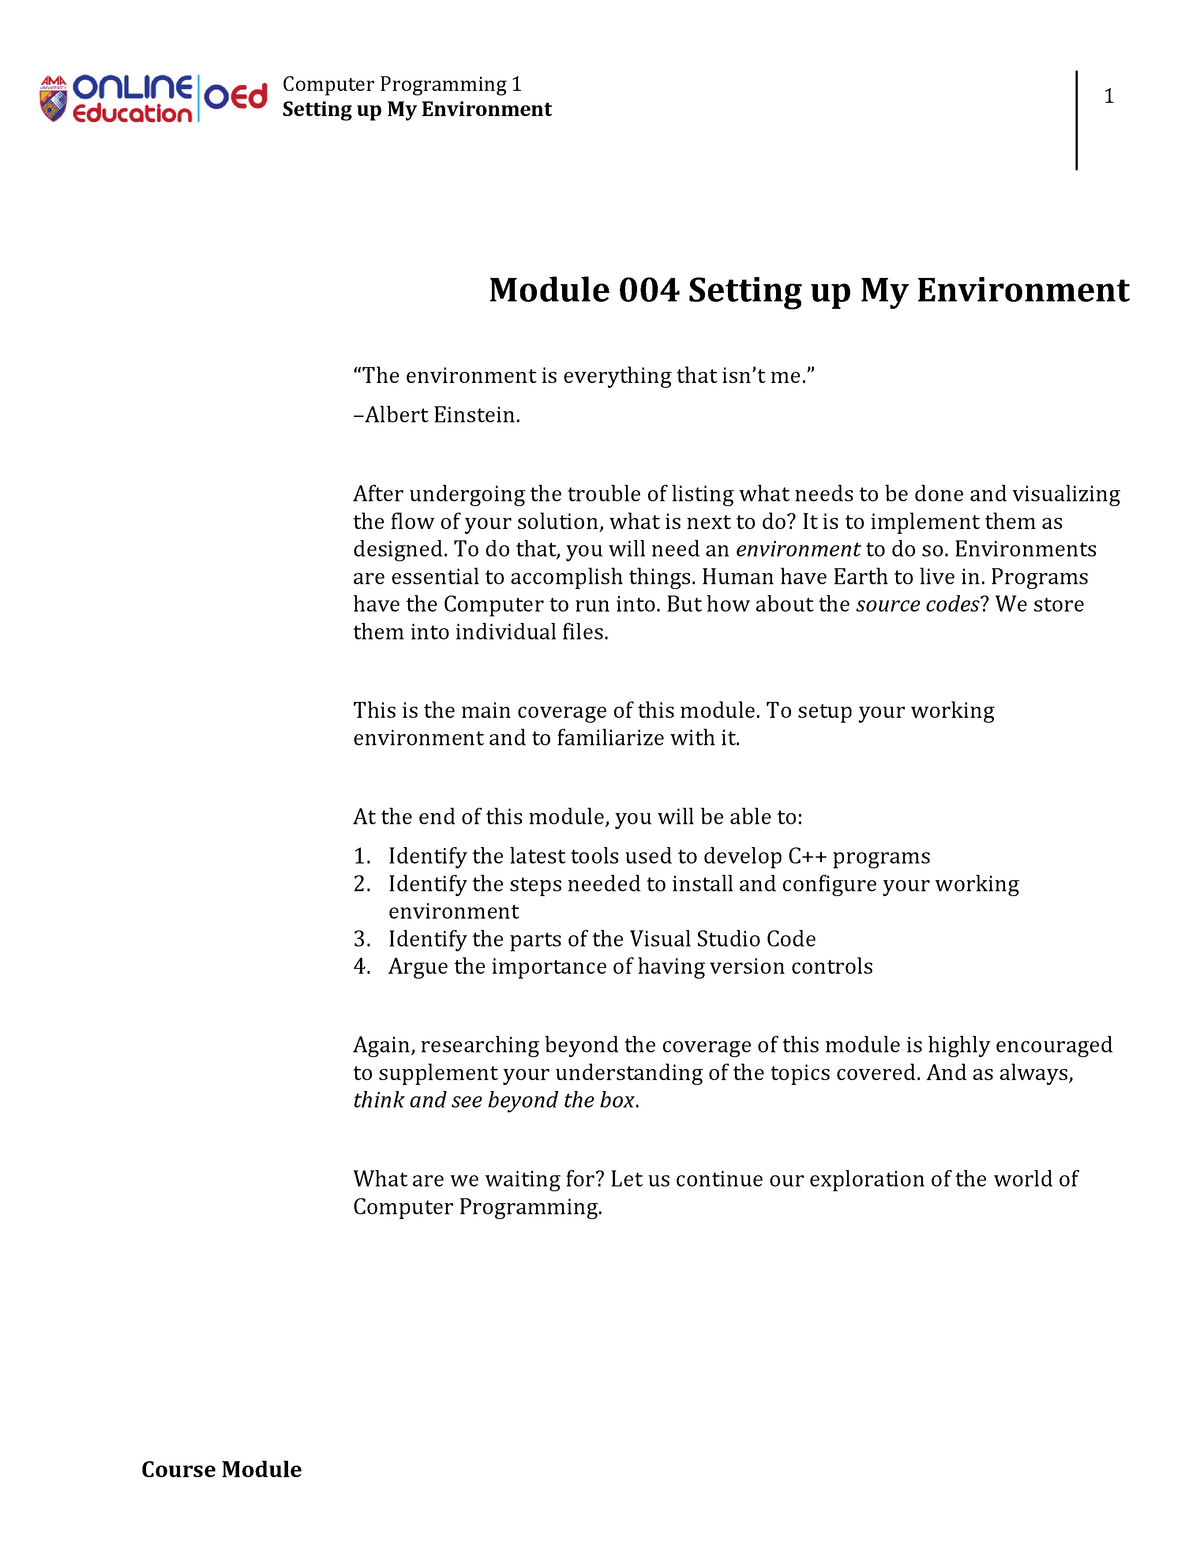 Module 004 Setting up My Environment - Bachelor of Science in